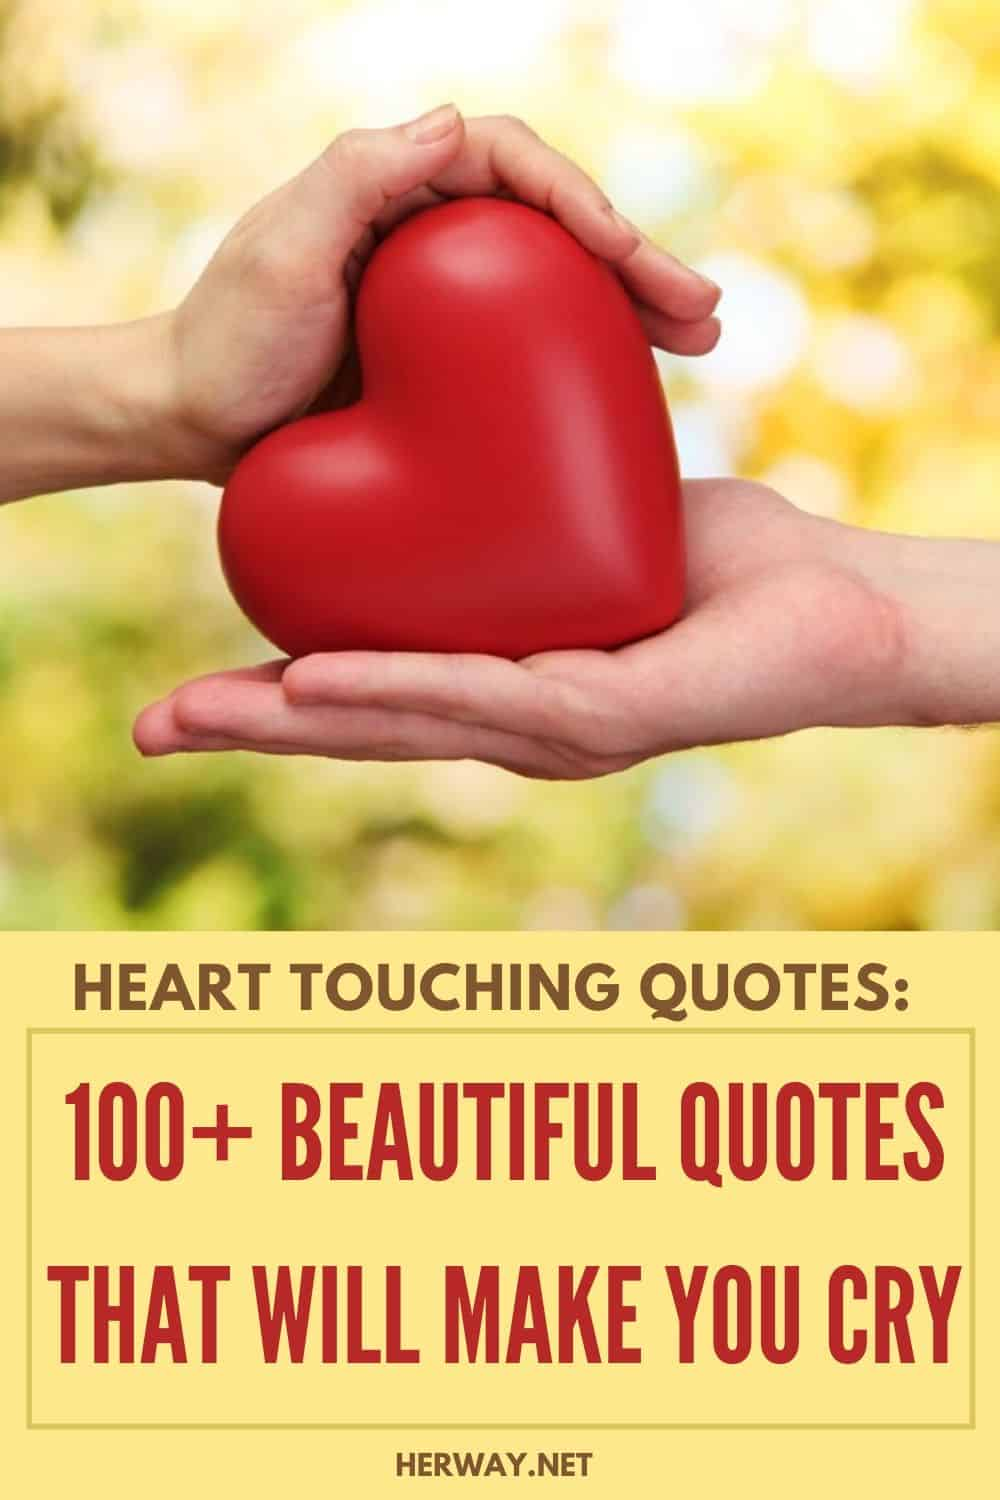 Heart Touching Quotes: 100+ Beautiful Quotes That Will Make You Cry pinterest